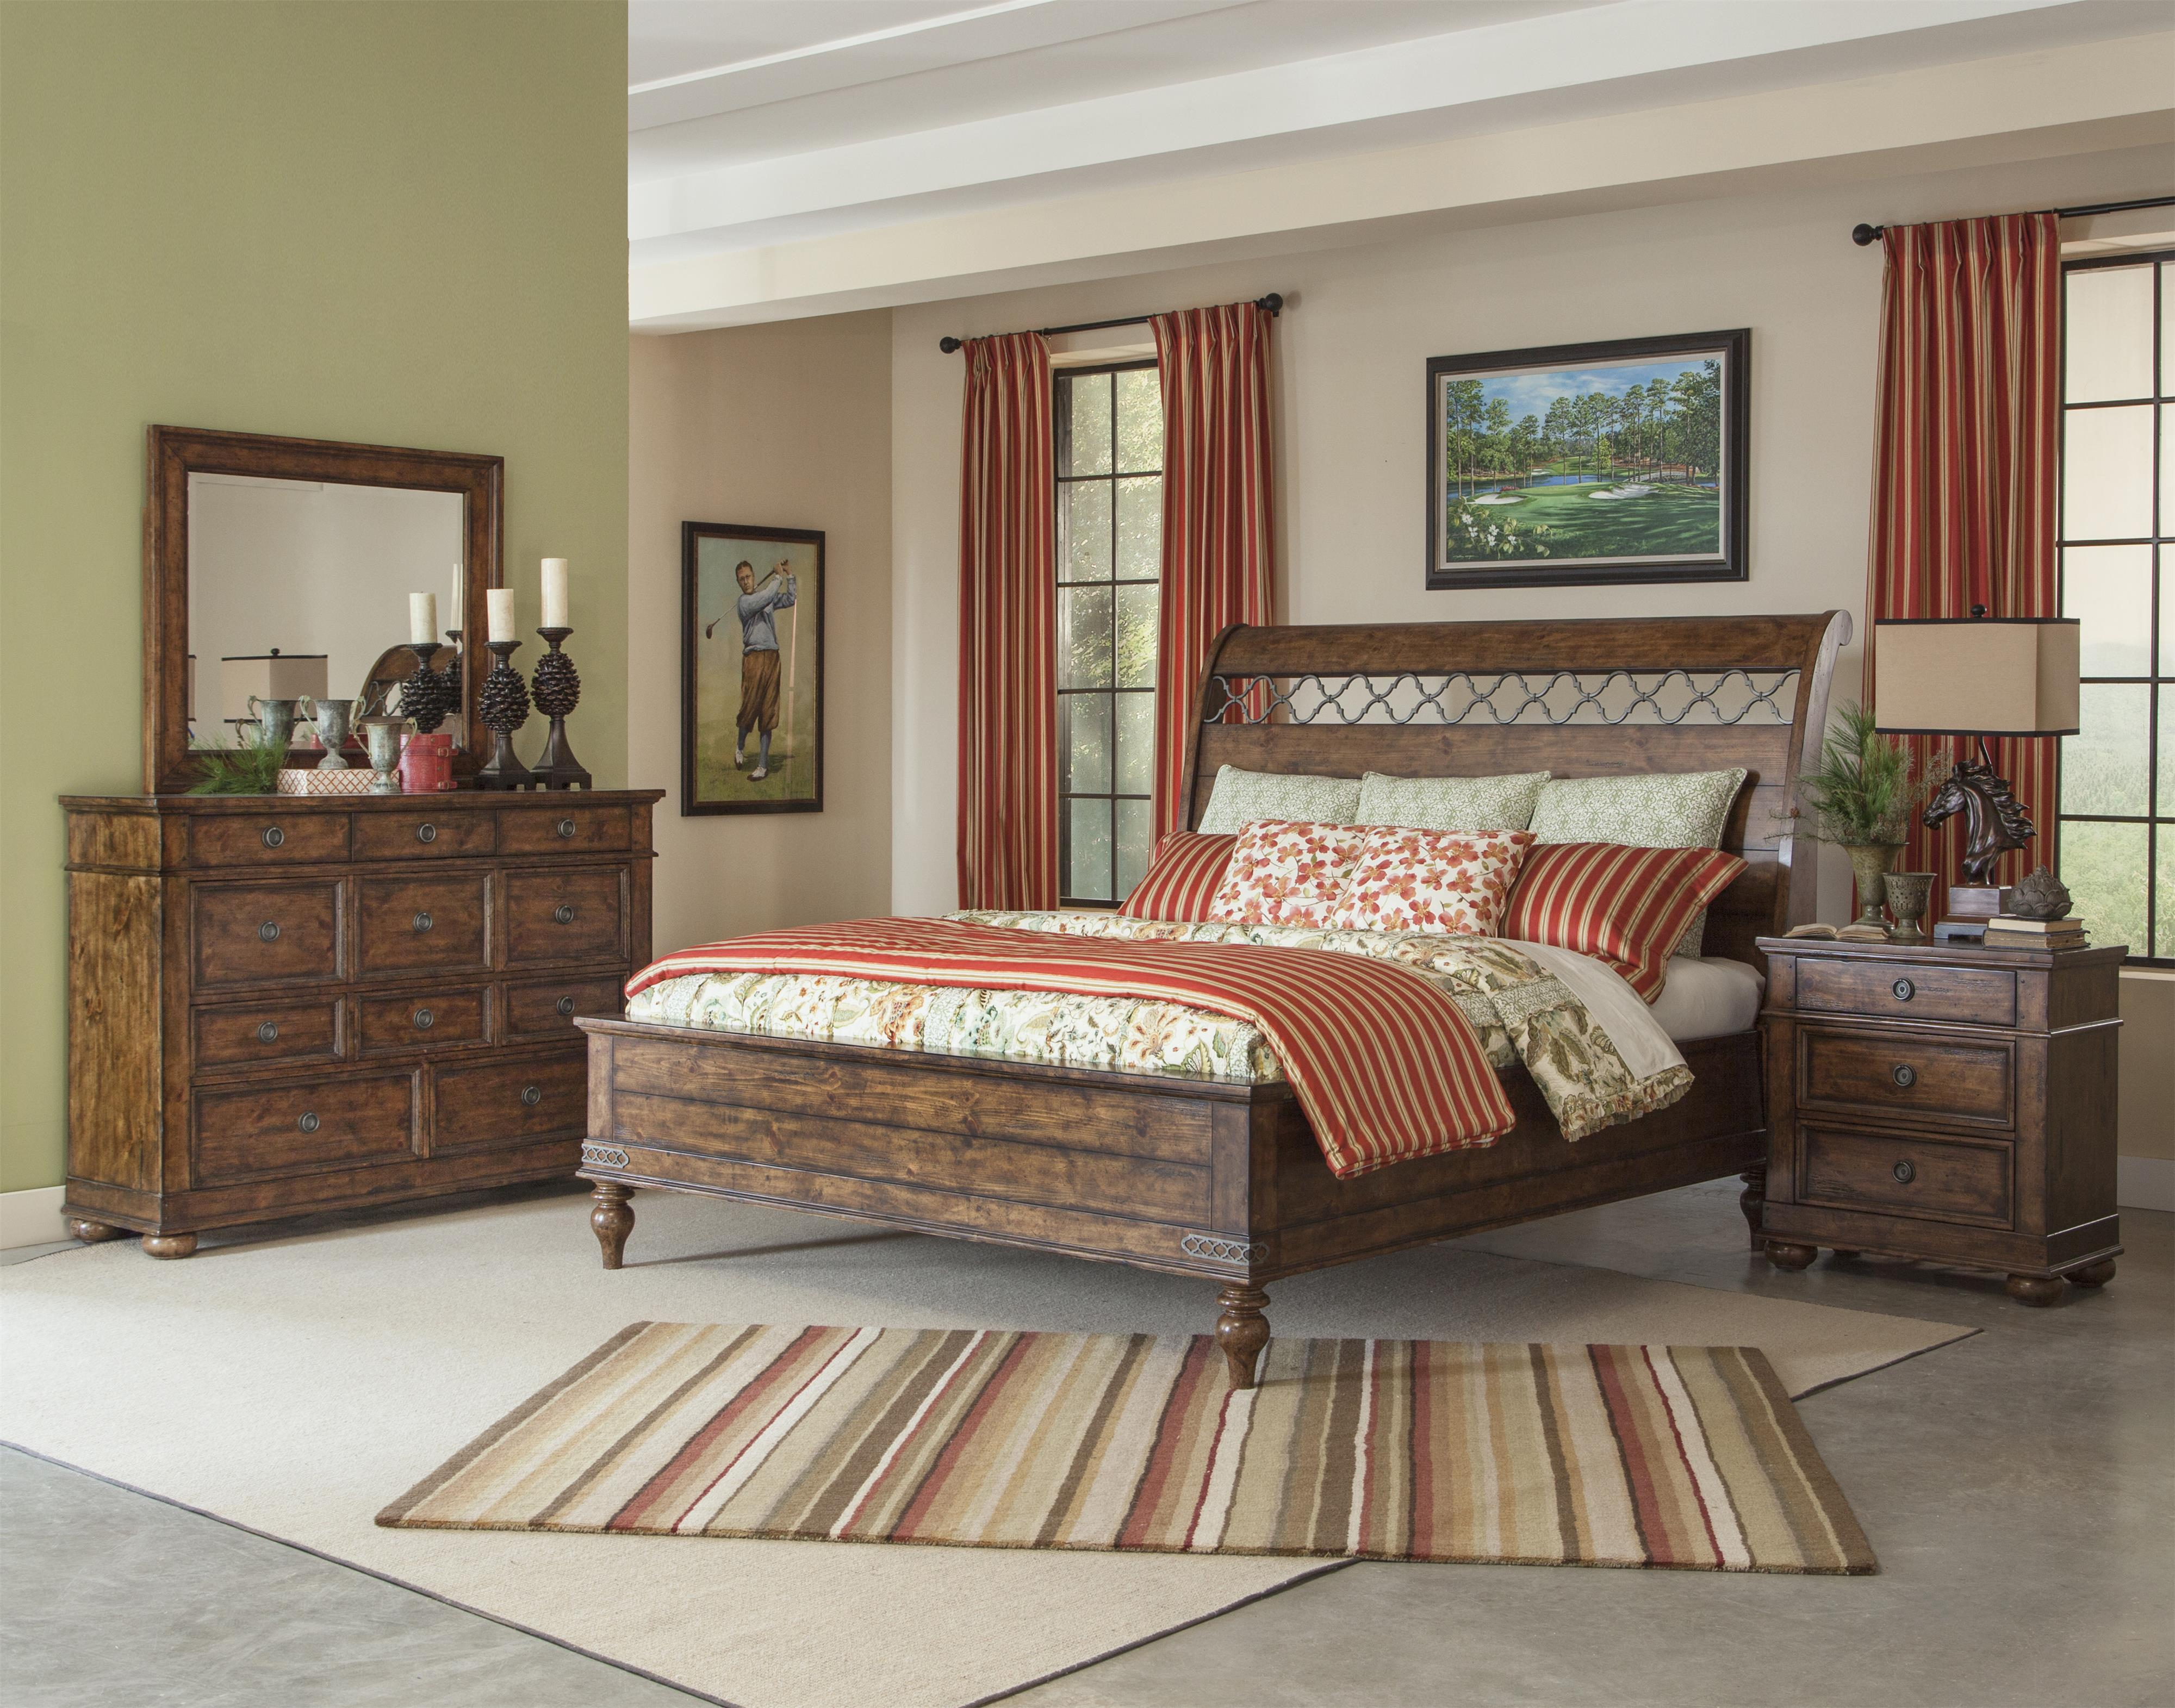 Klaussner Bedroom Furniture Carolina Preserves By Klaussner Southern Pines Dormie Round